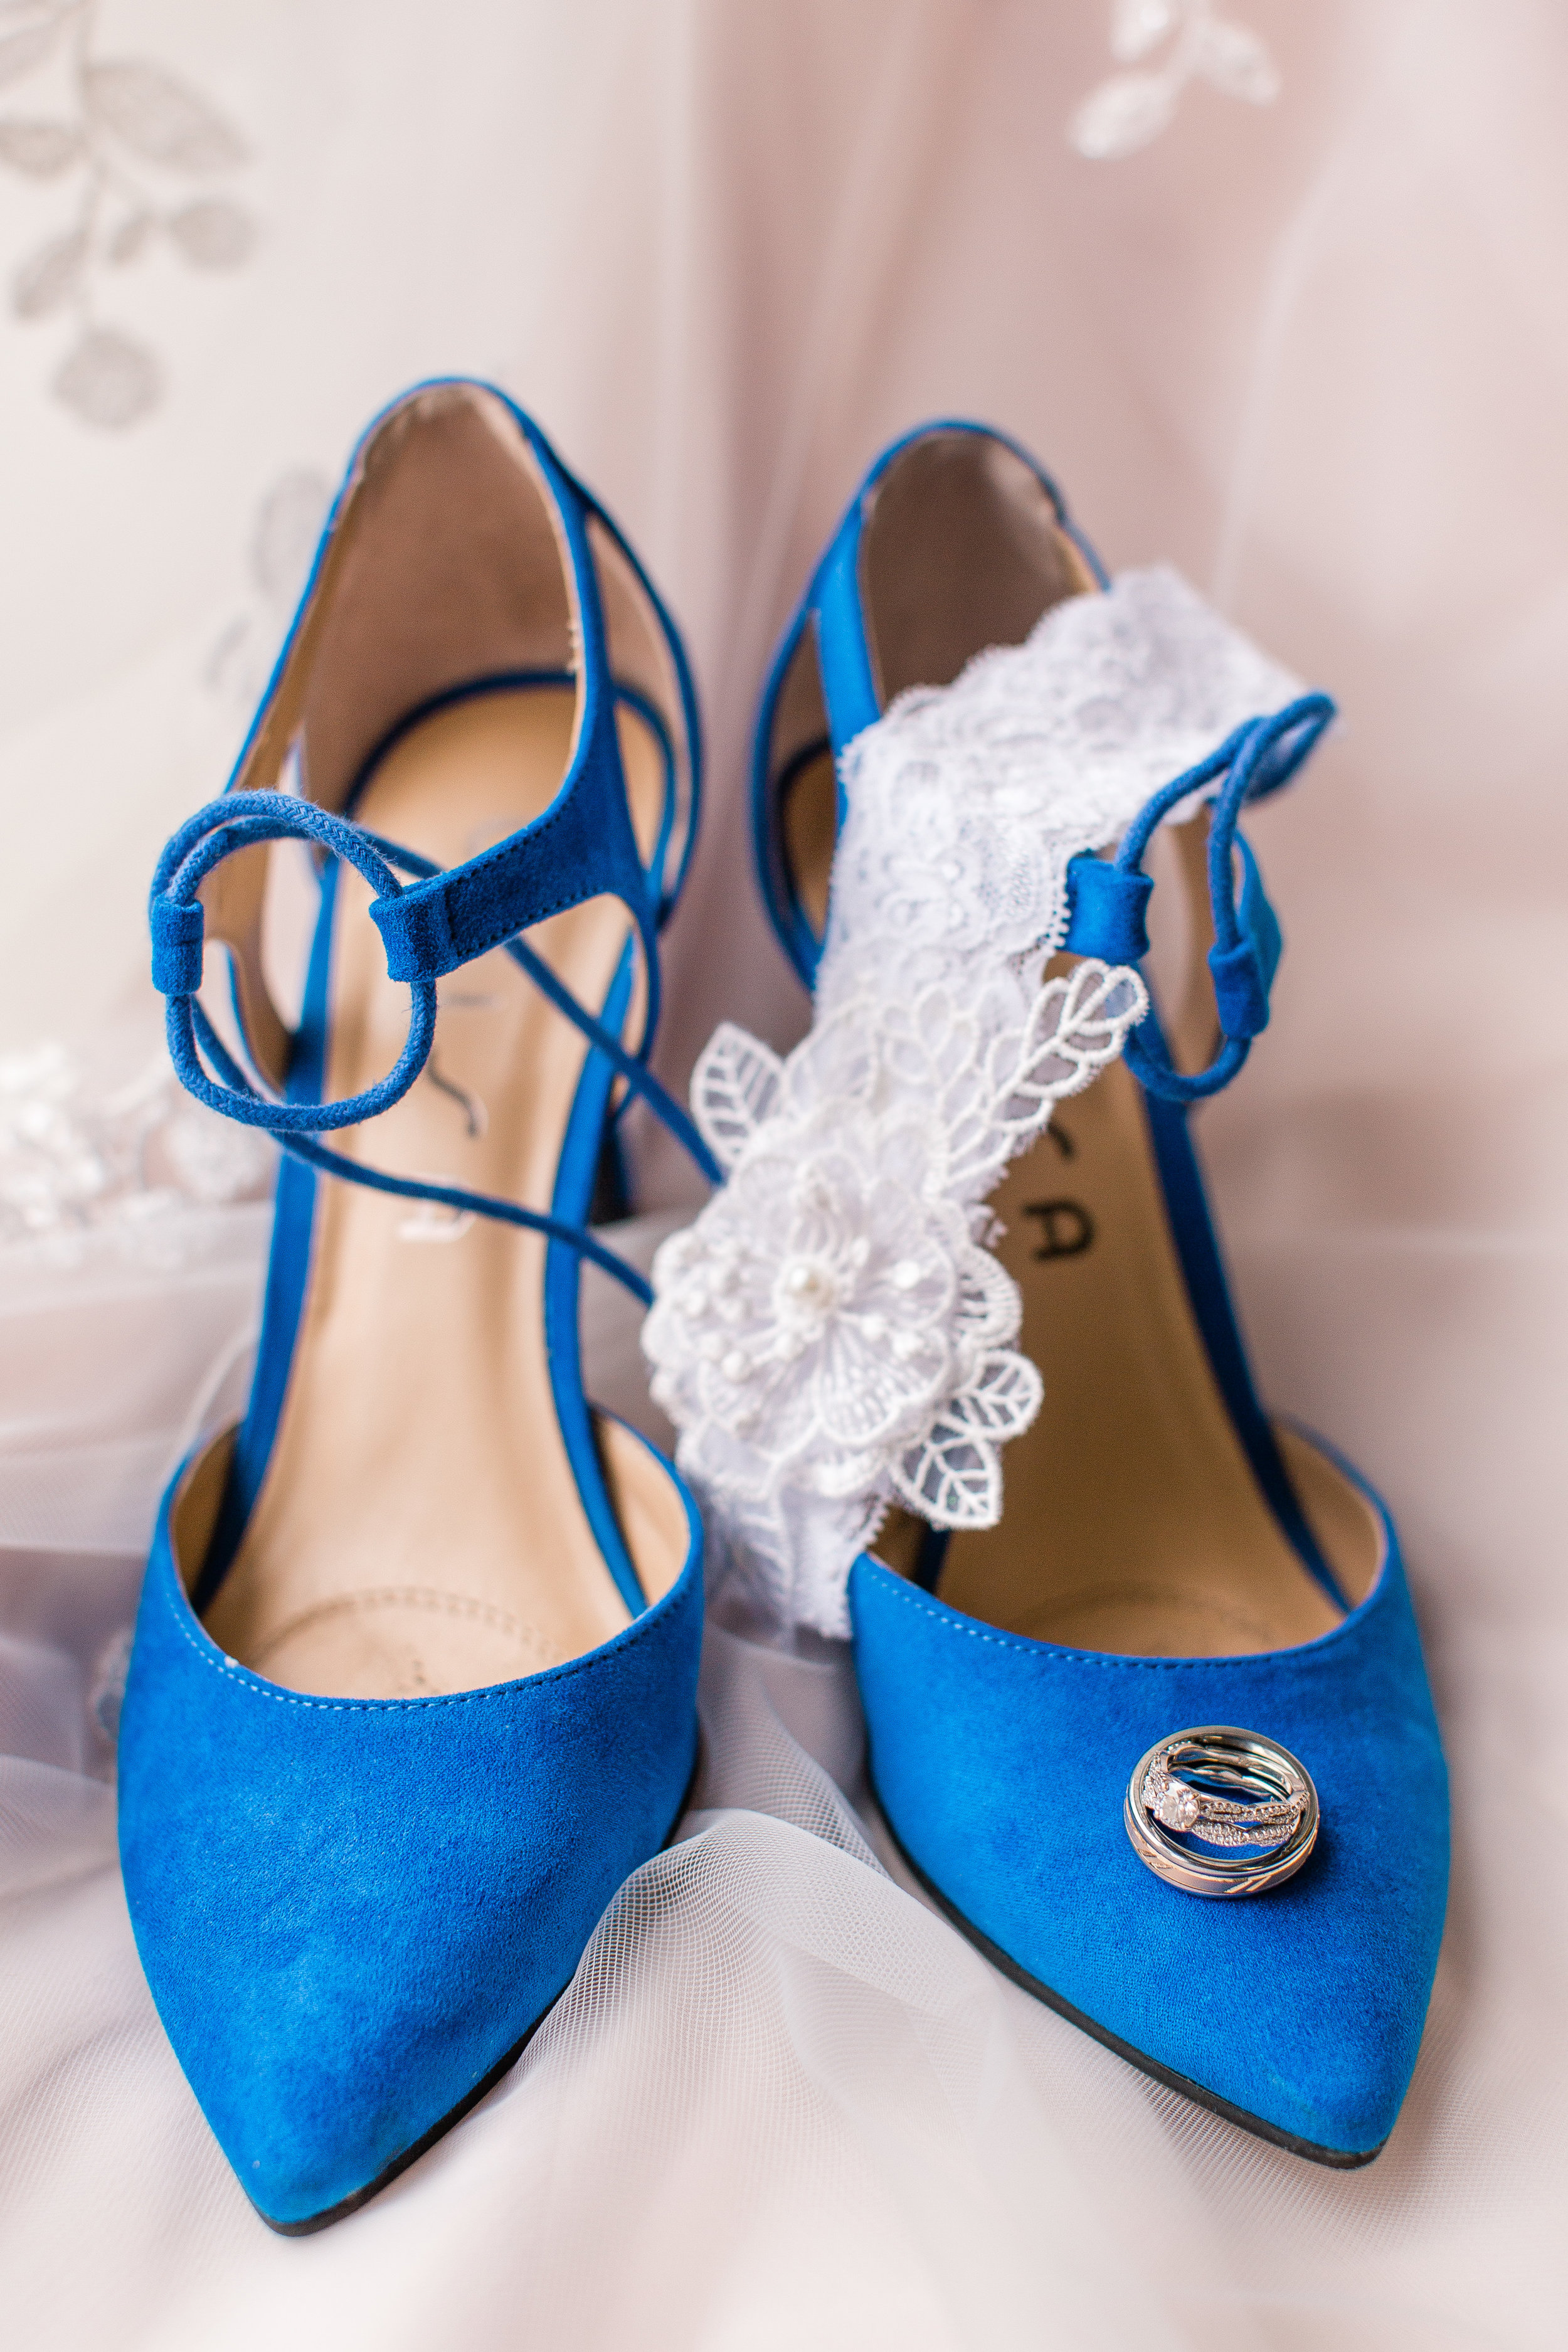 norwalk and cumming Iowa wedding blue suede wedding heels